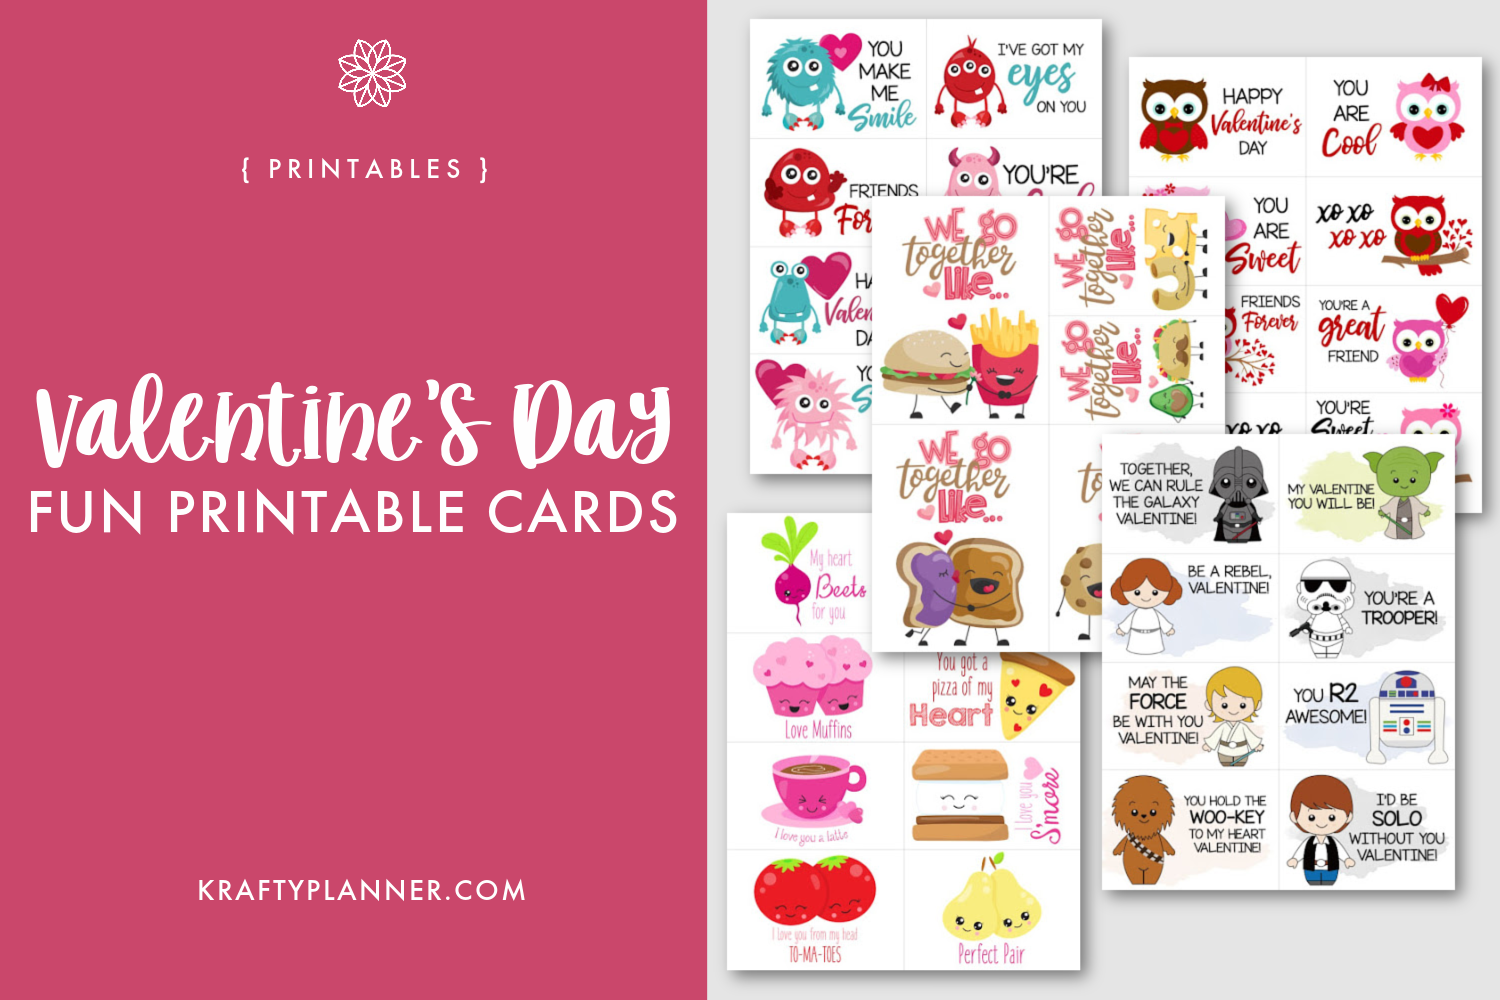 Valentine's Day Fun Printable Cards